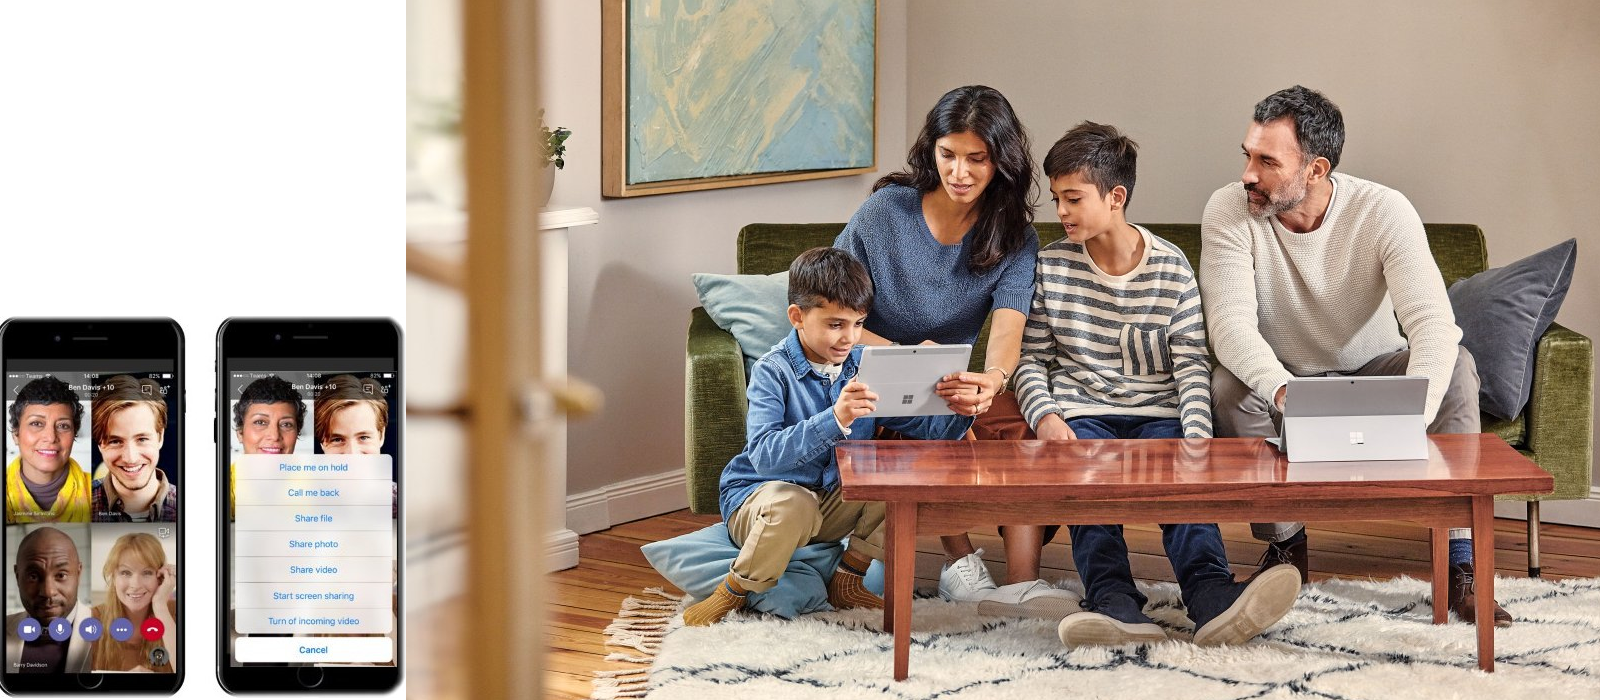 A family sits on the couch with two Surface Go and uses the mobile apps to communicate with others